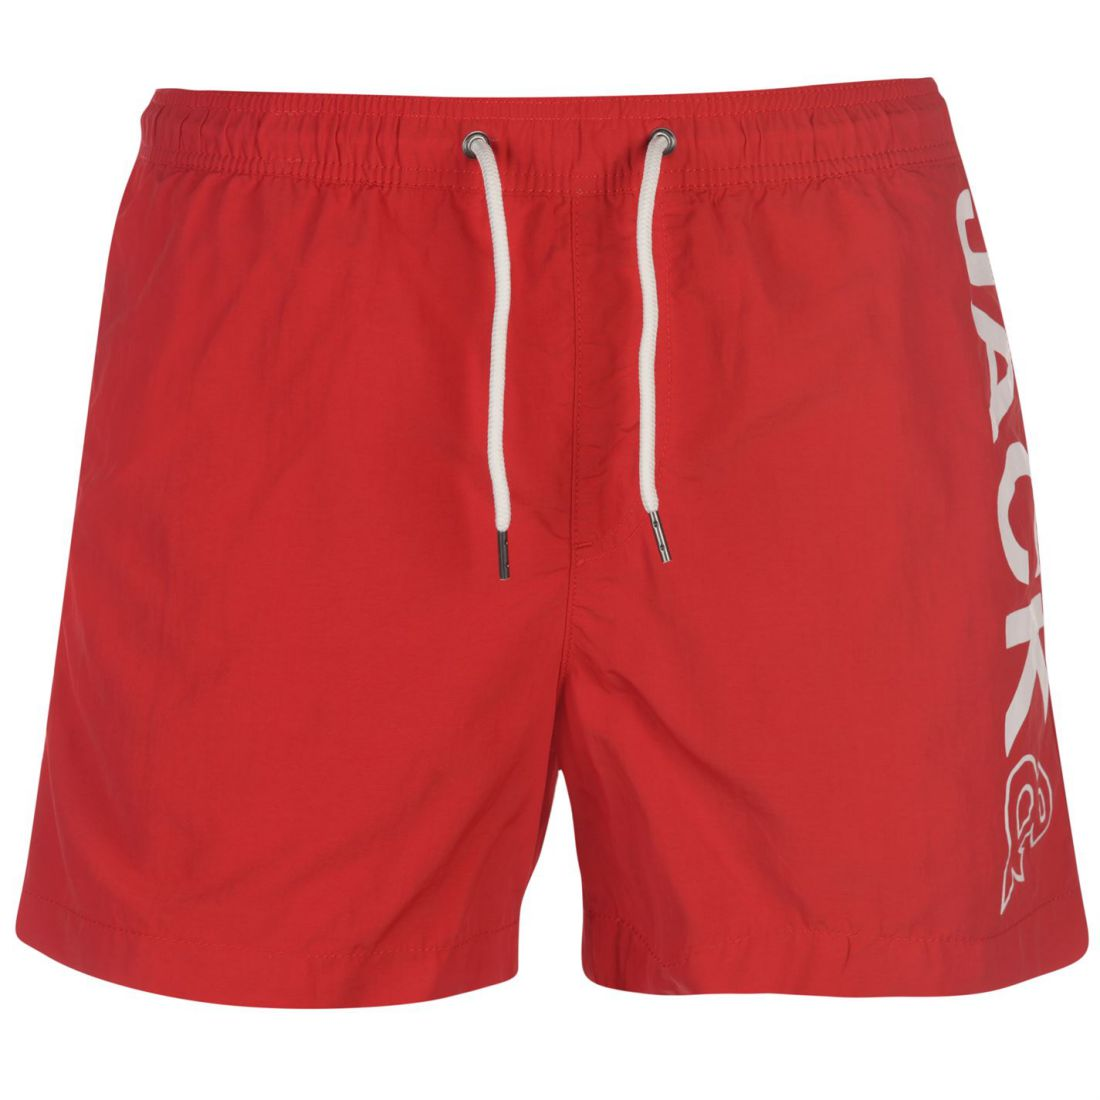 6a0958f76f Jack and Jones Sunset Swim Shorts Mens Gents Pants Trousers Bottoms ...